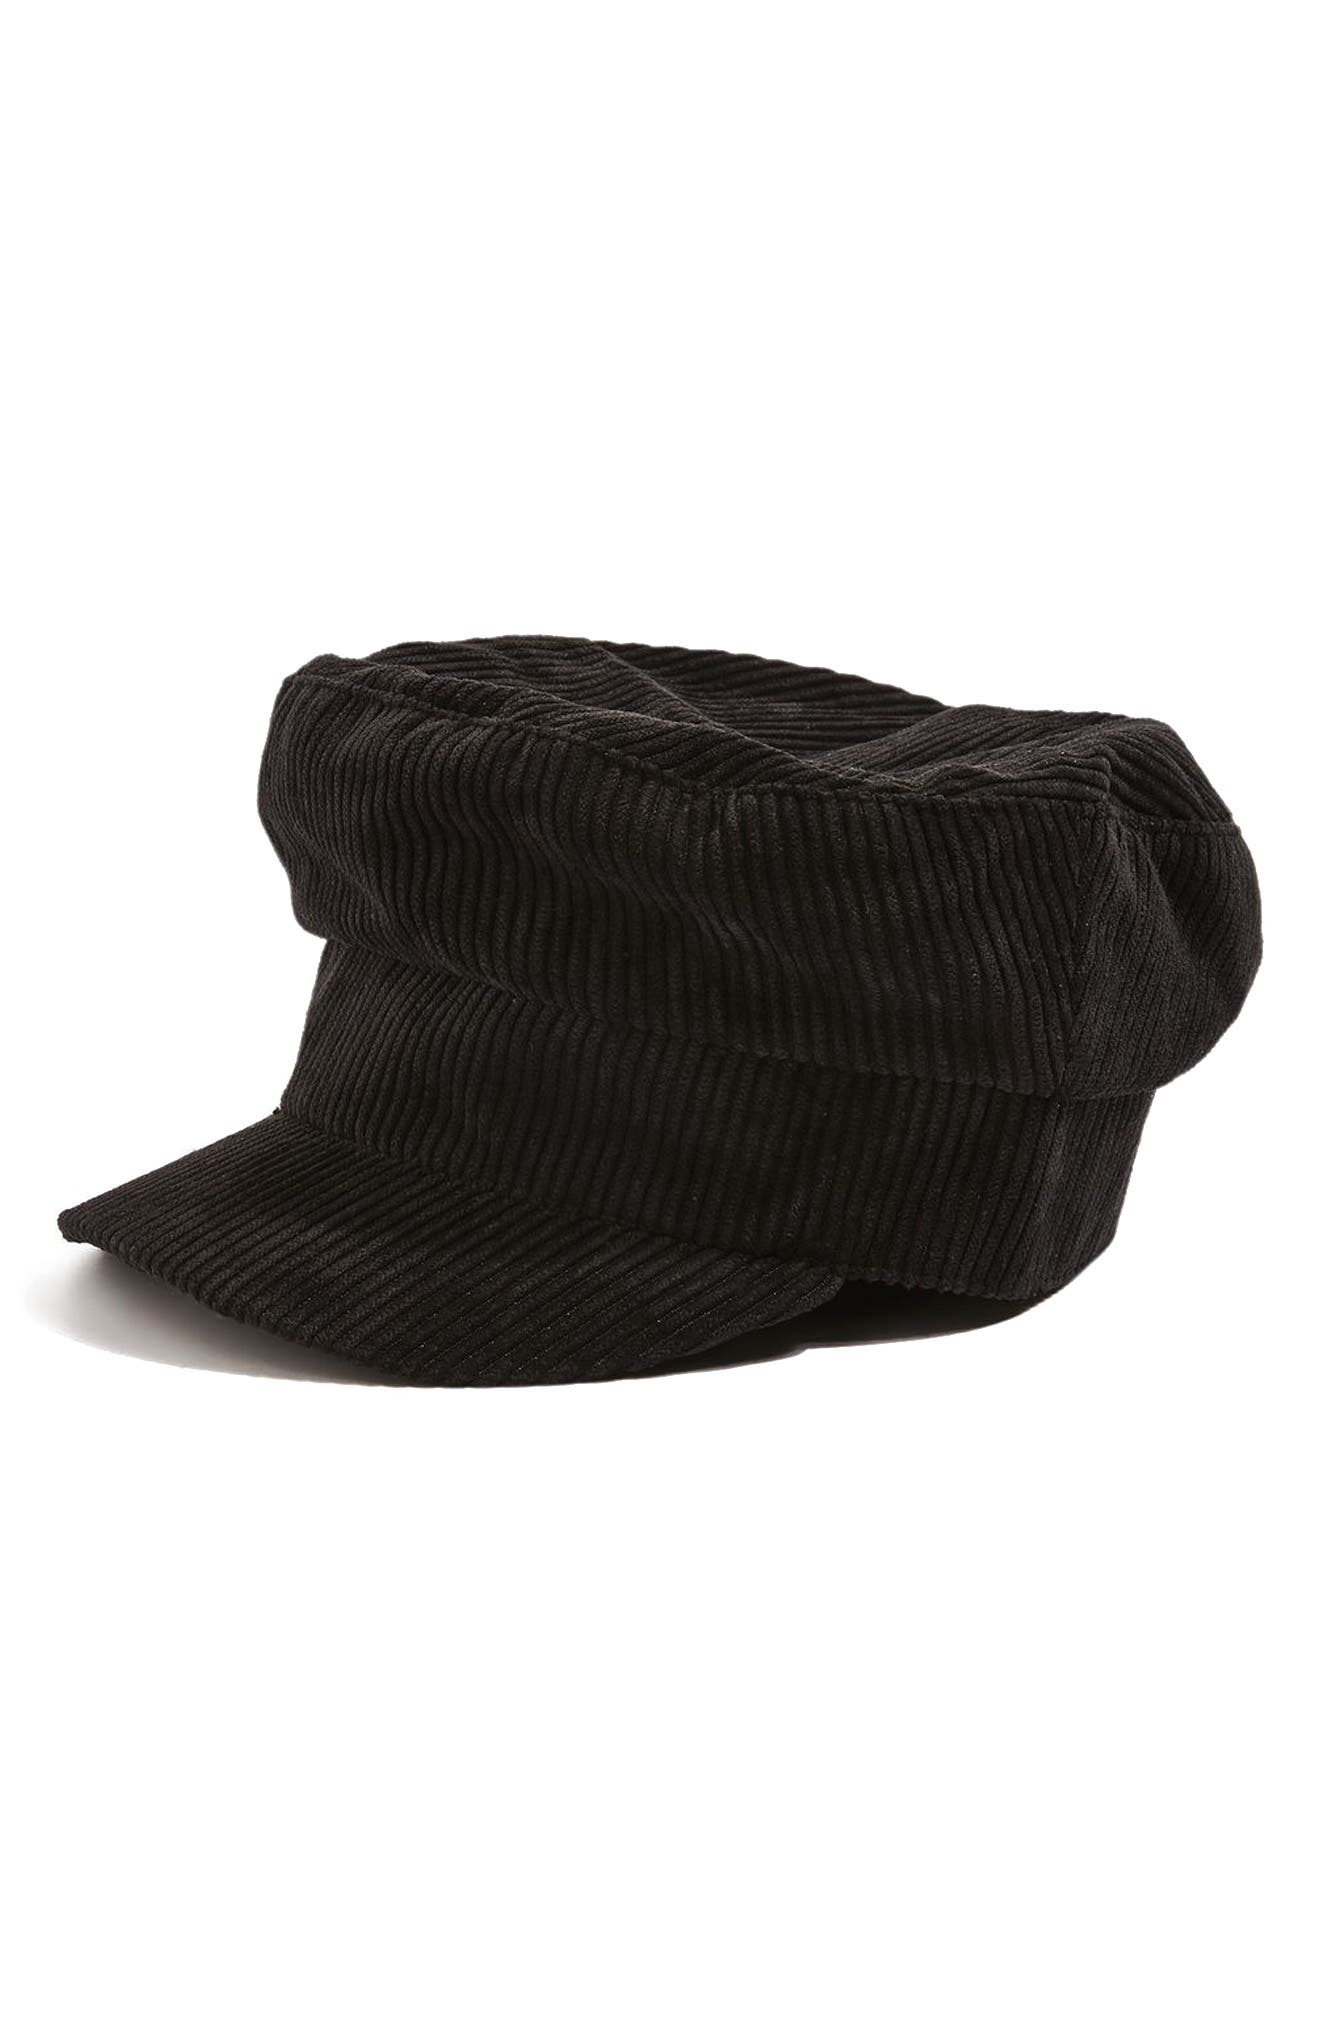 Corduroy Baker Boy Hat,                             Alternate thumbnail 2, color,